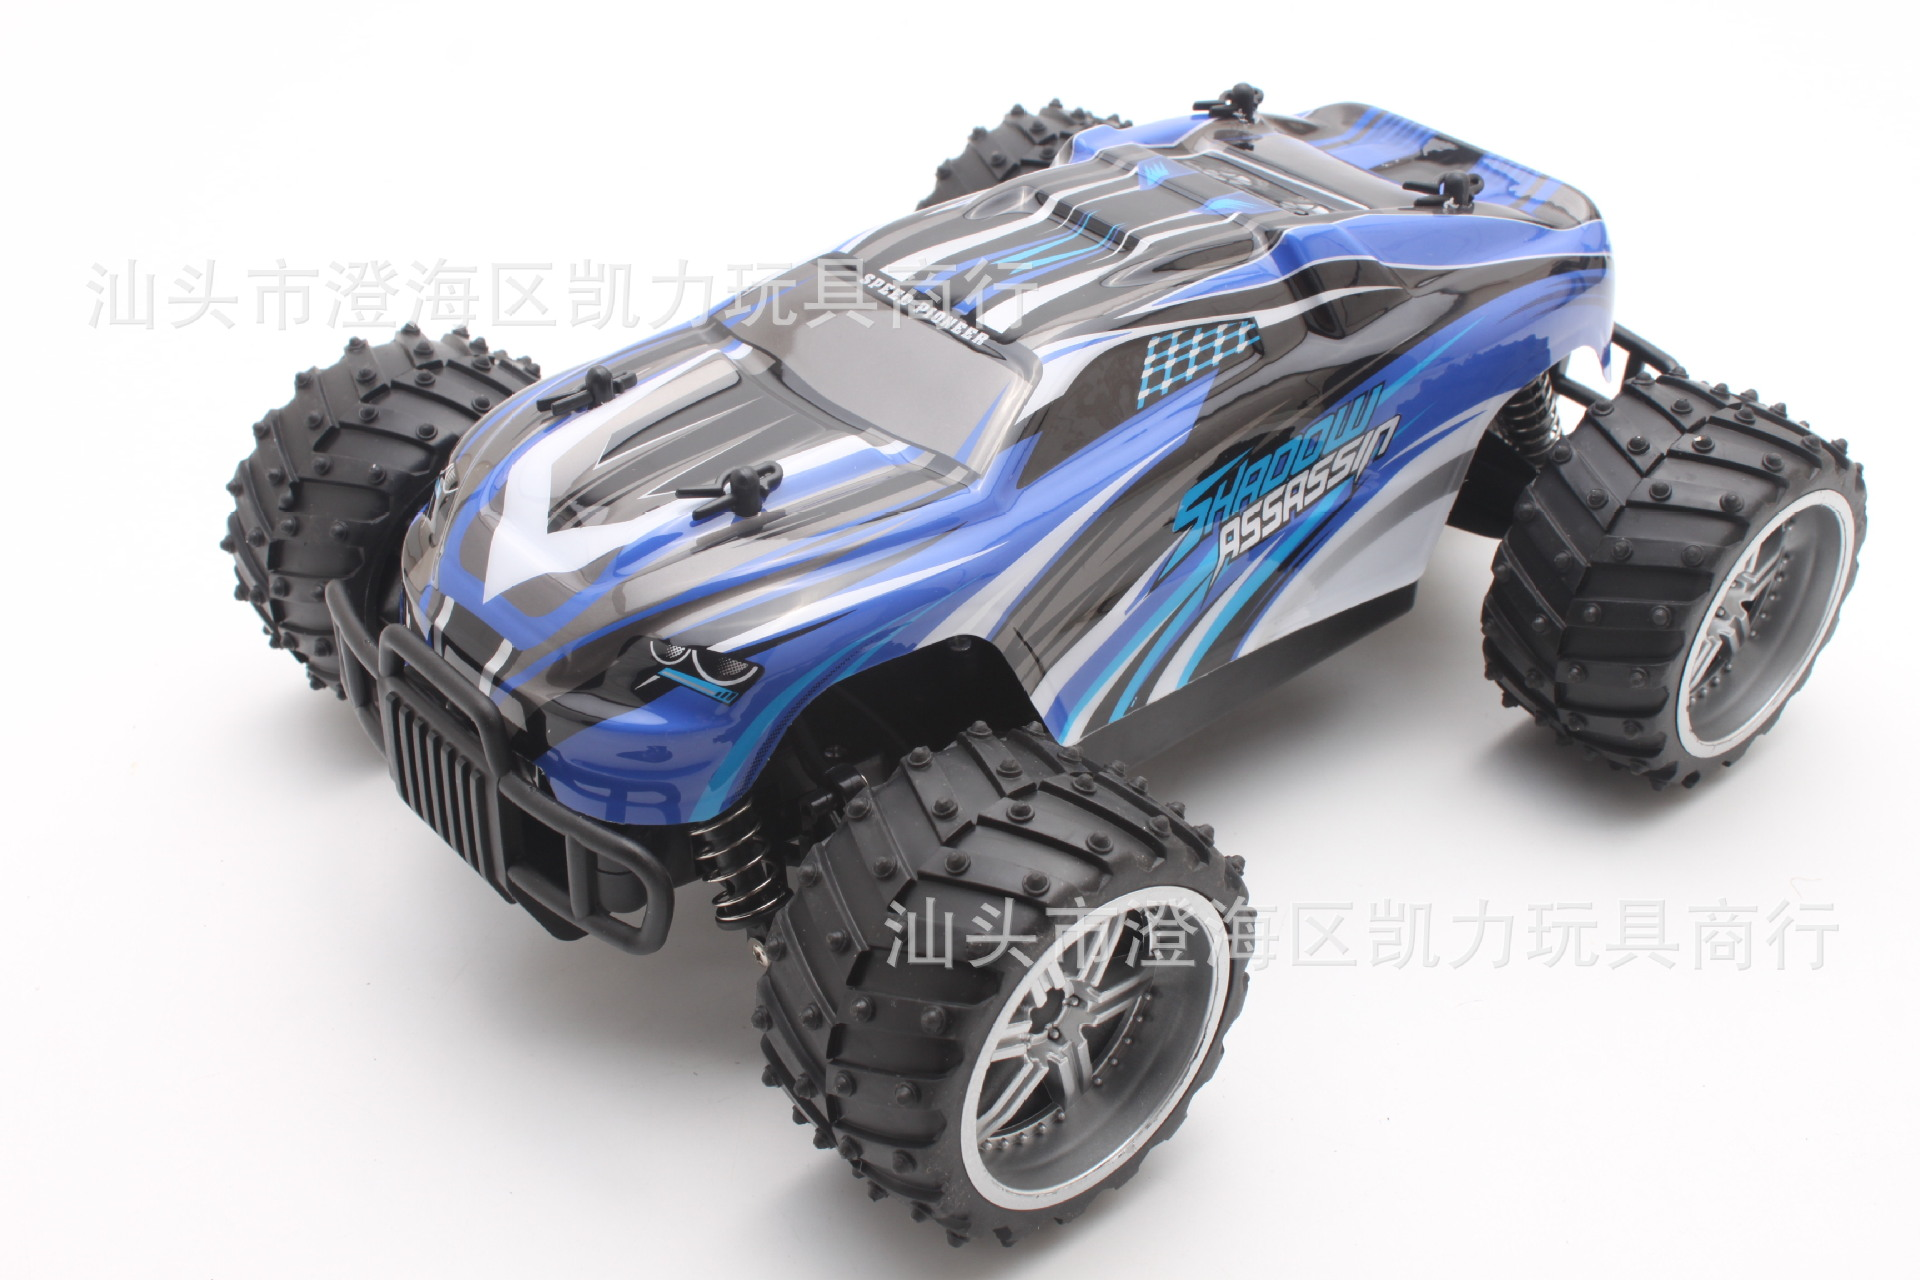 Compare Prices On Toy Dirt Cars Online Shopping Buy Low Price Toy